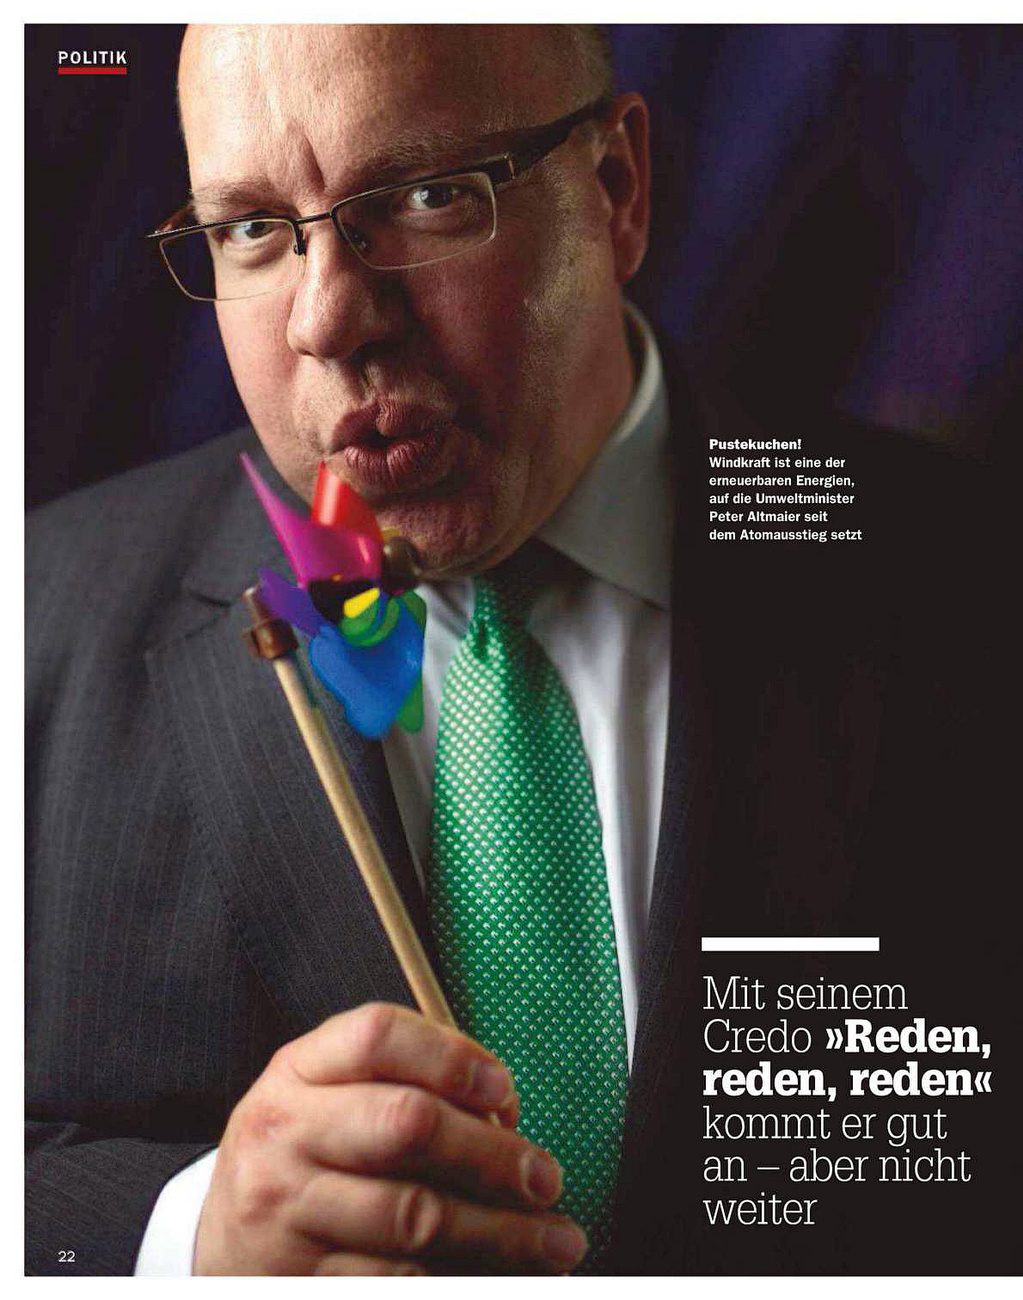 Focus Magazine, Germany, German Minister for the environment, Peter Altmaier, 10/2012